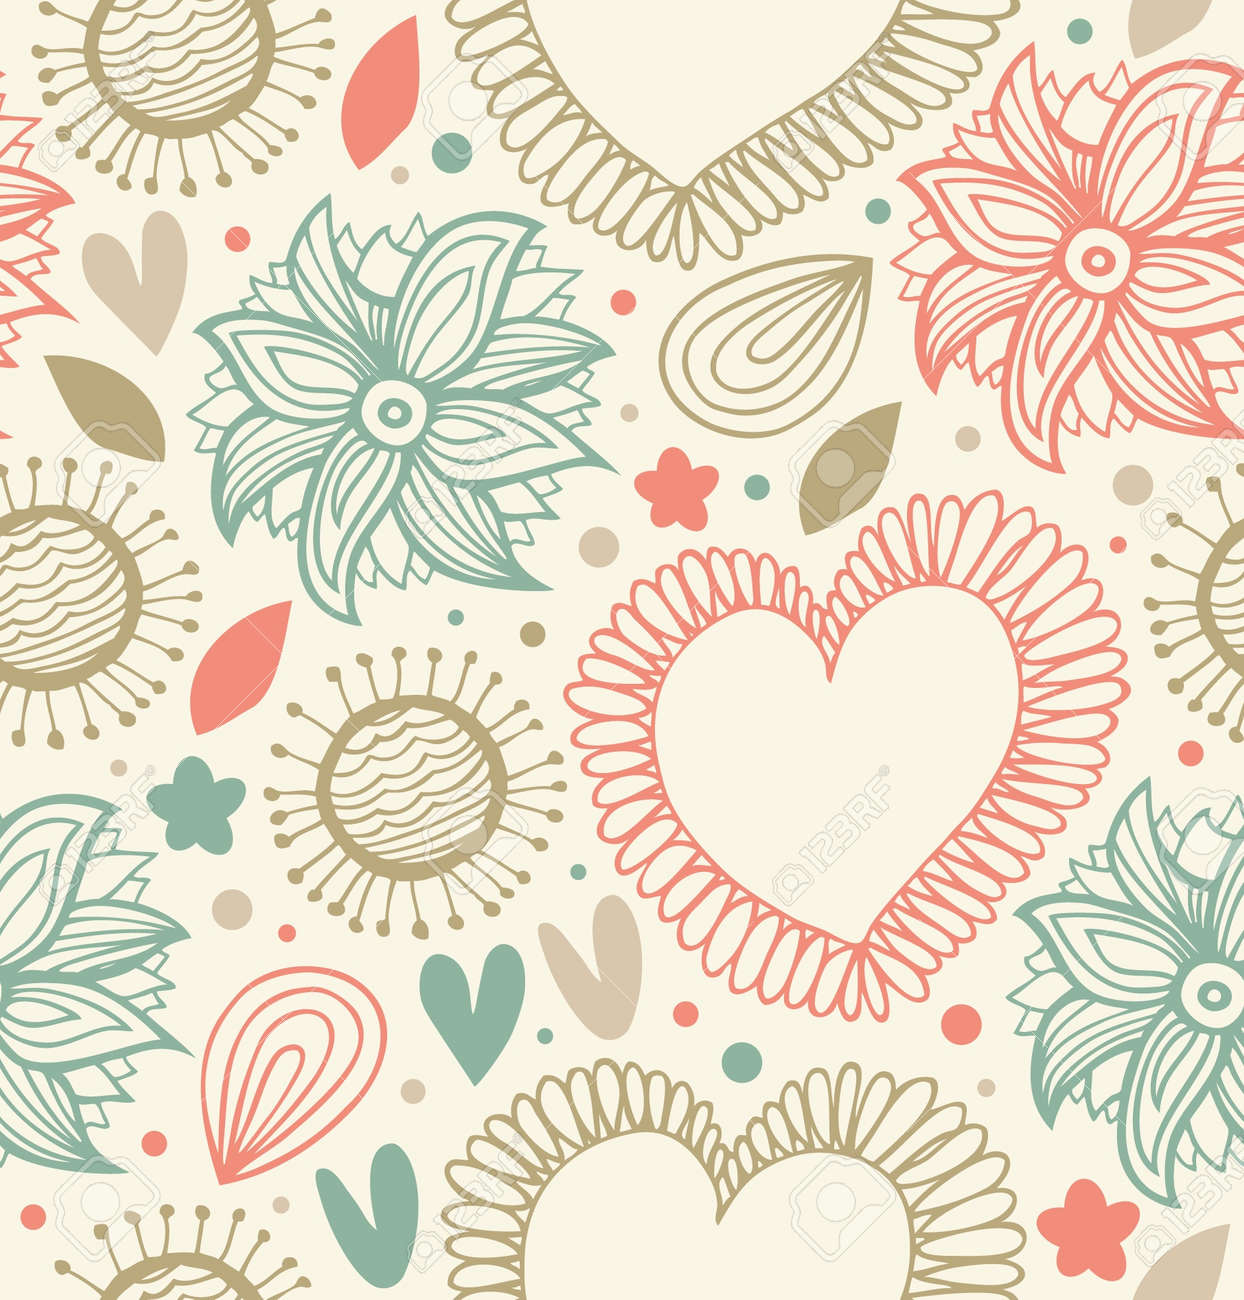 Floral beauty seamless pattern on the light background. Digital backdrop with hearts and flowers. Fabric decorative stylish texture Stock Vector - 17695117